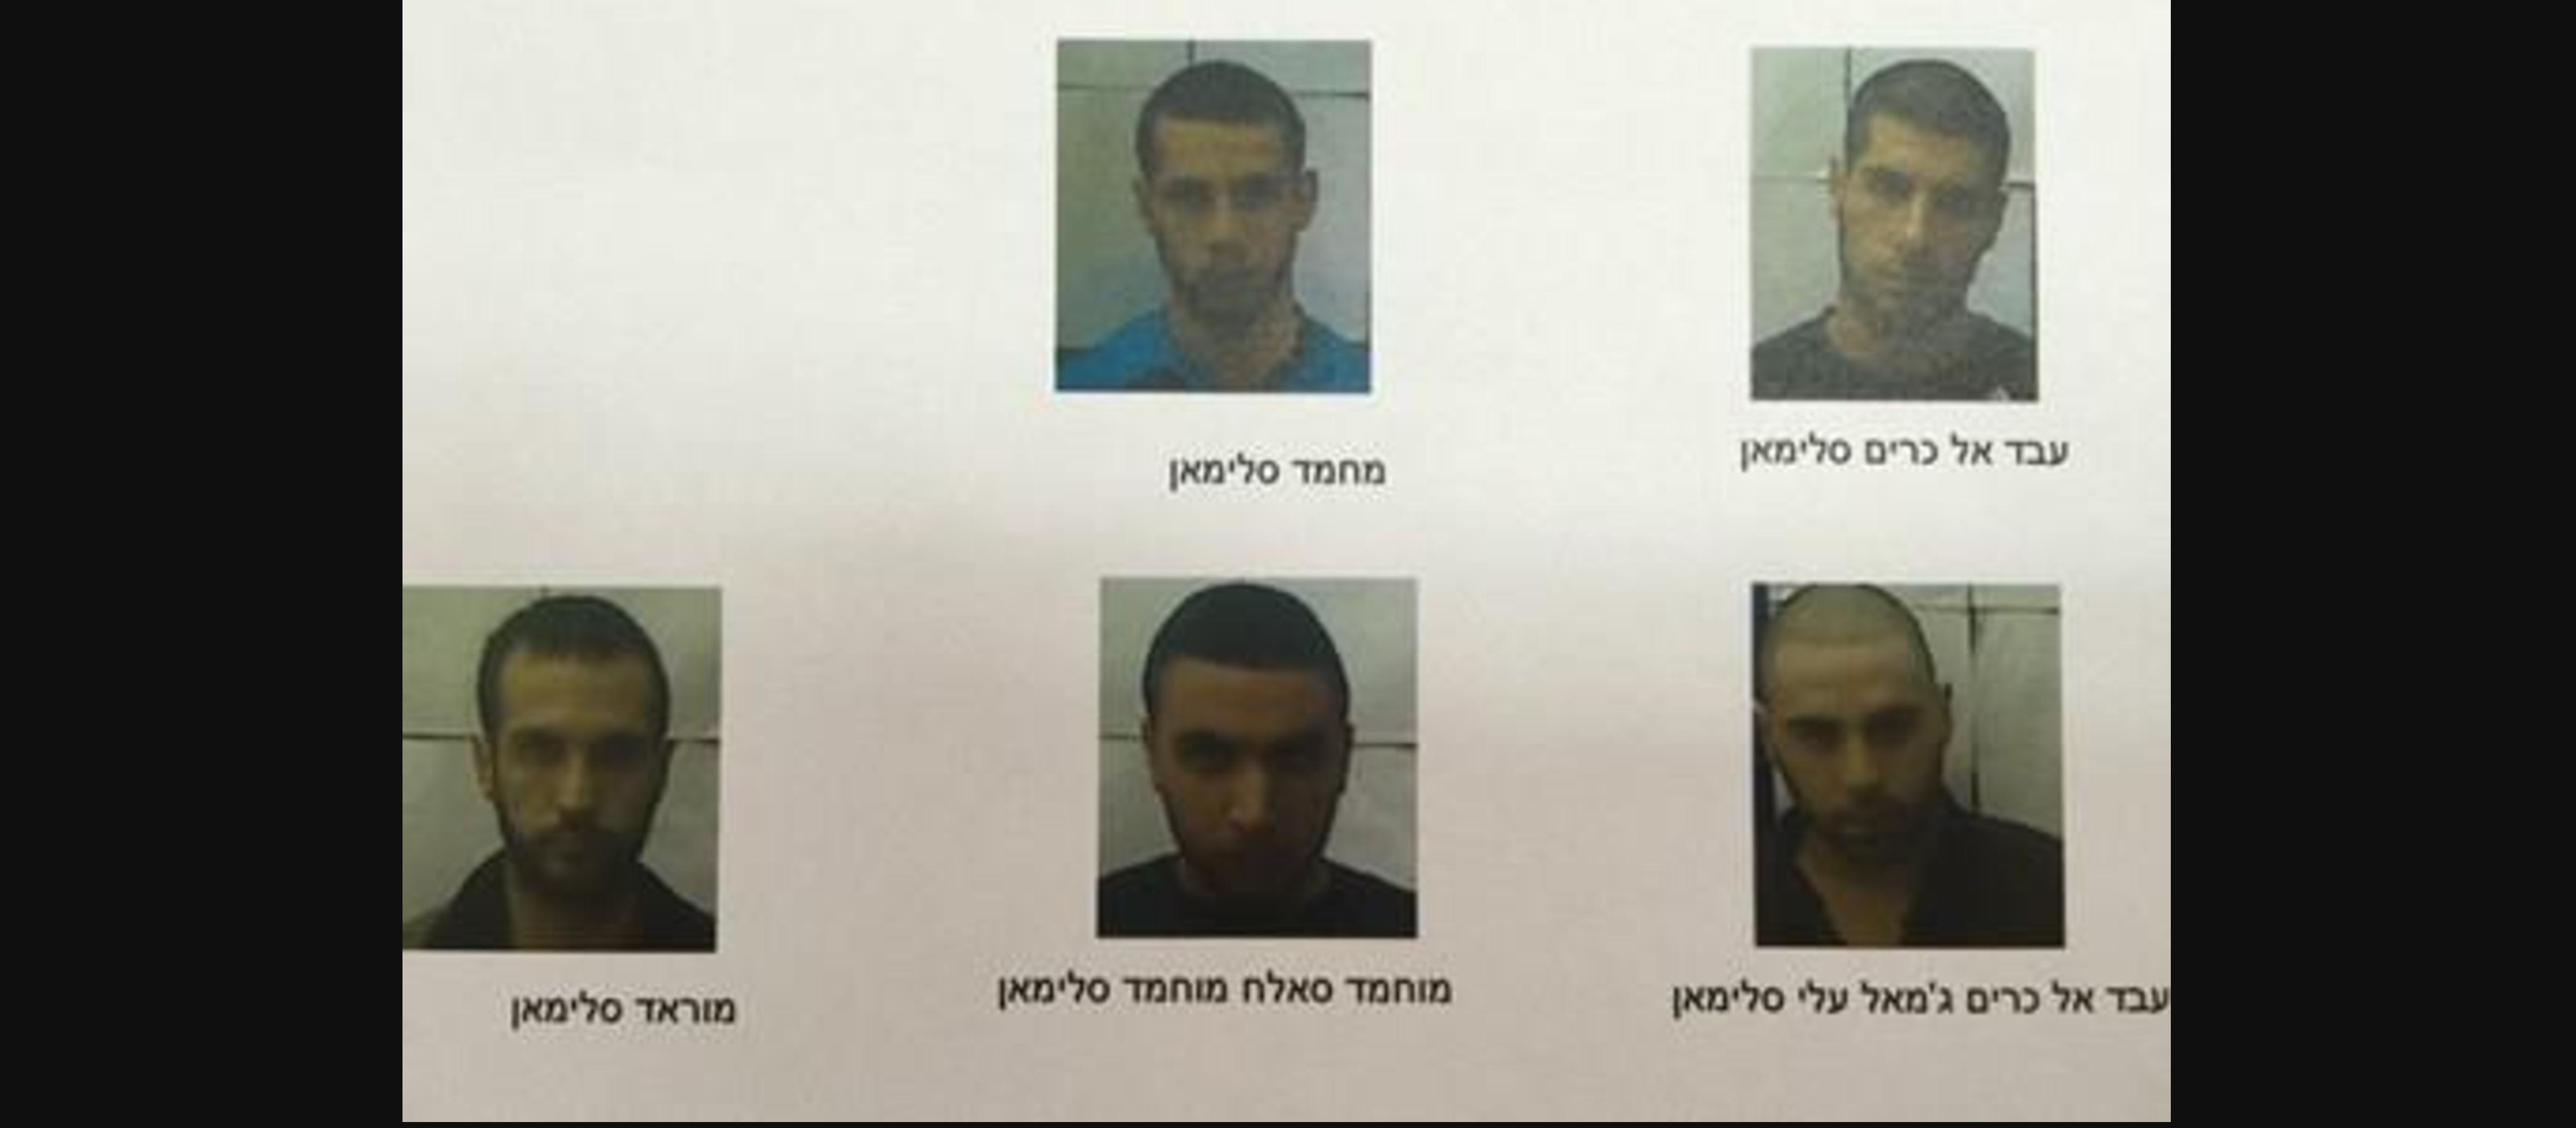 ISIS terror cell members arrested in Nazareth; planned attacks inside Israel